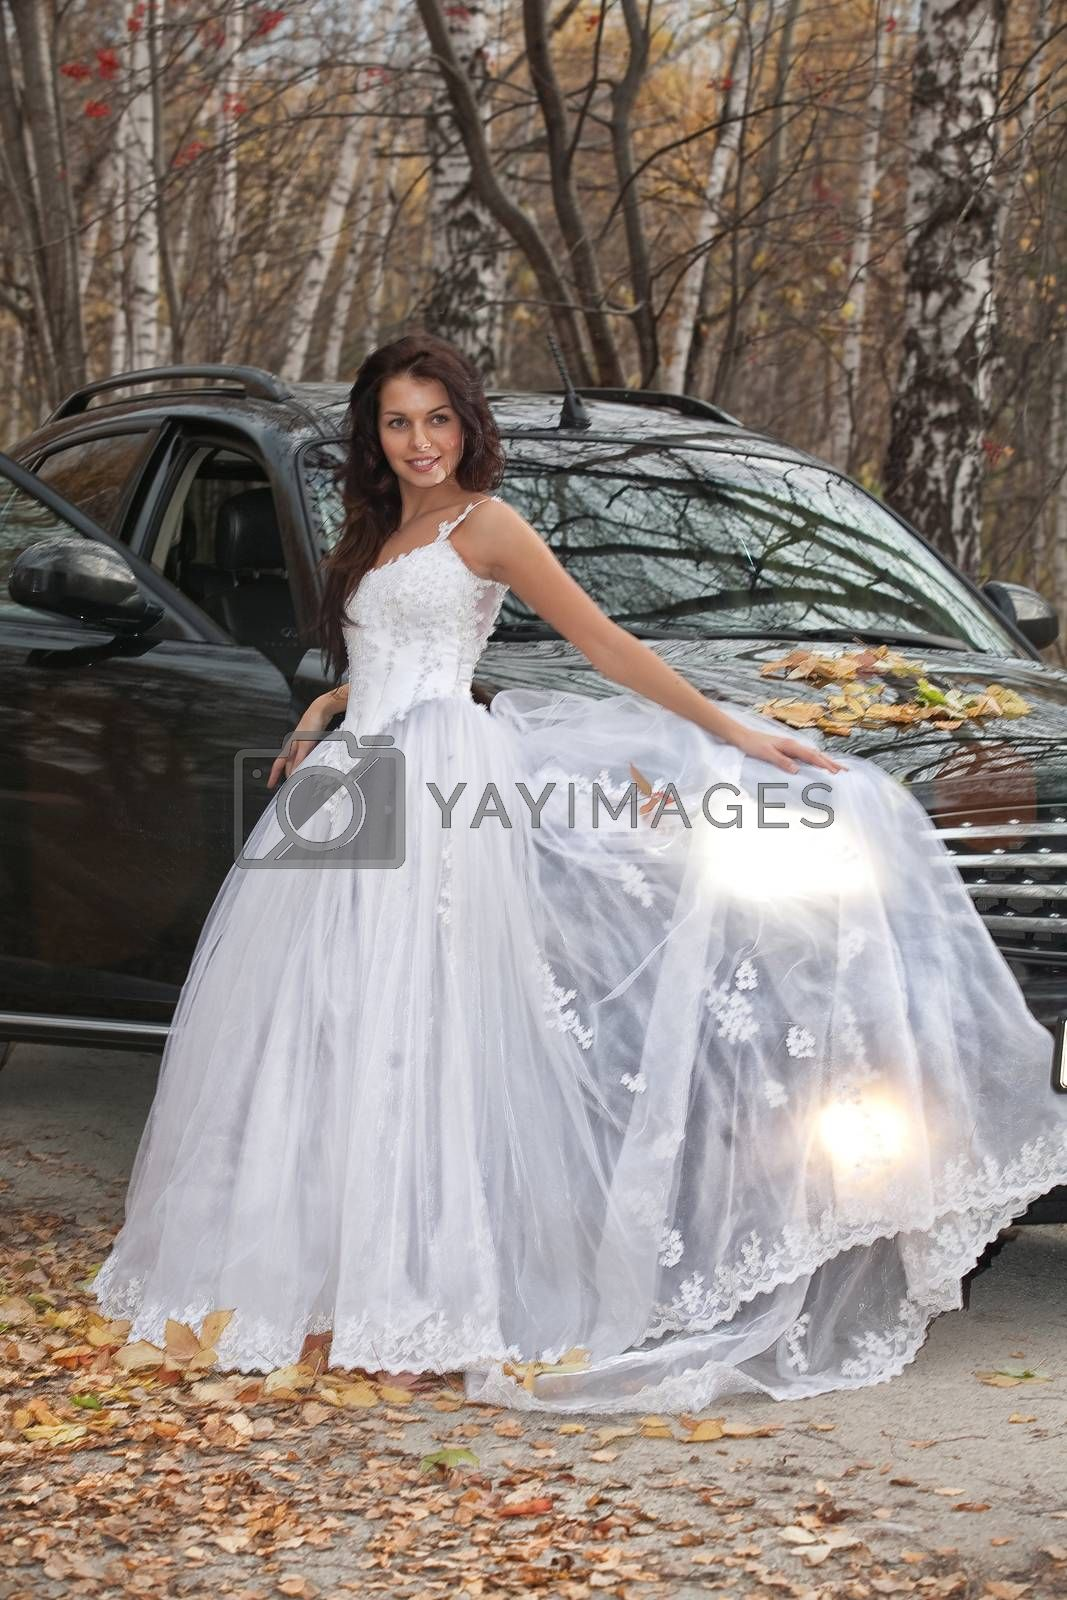 Young woman in a wedding dress standing near the jeep in an autumn forest